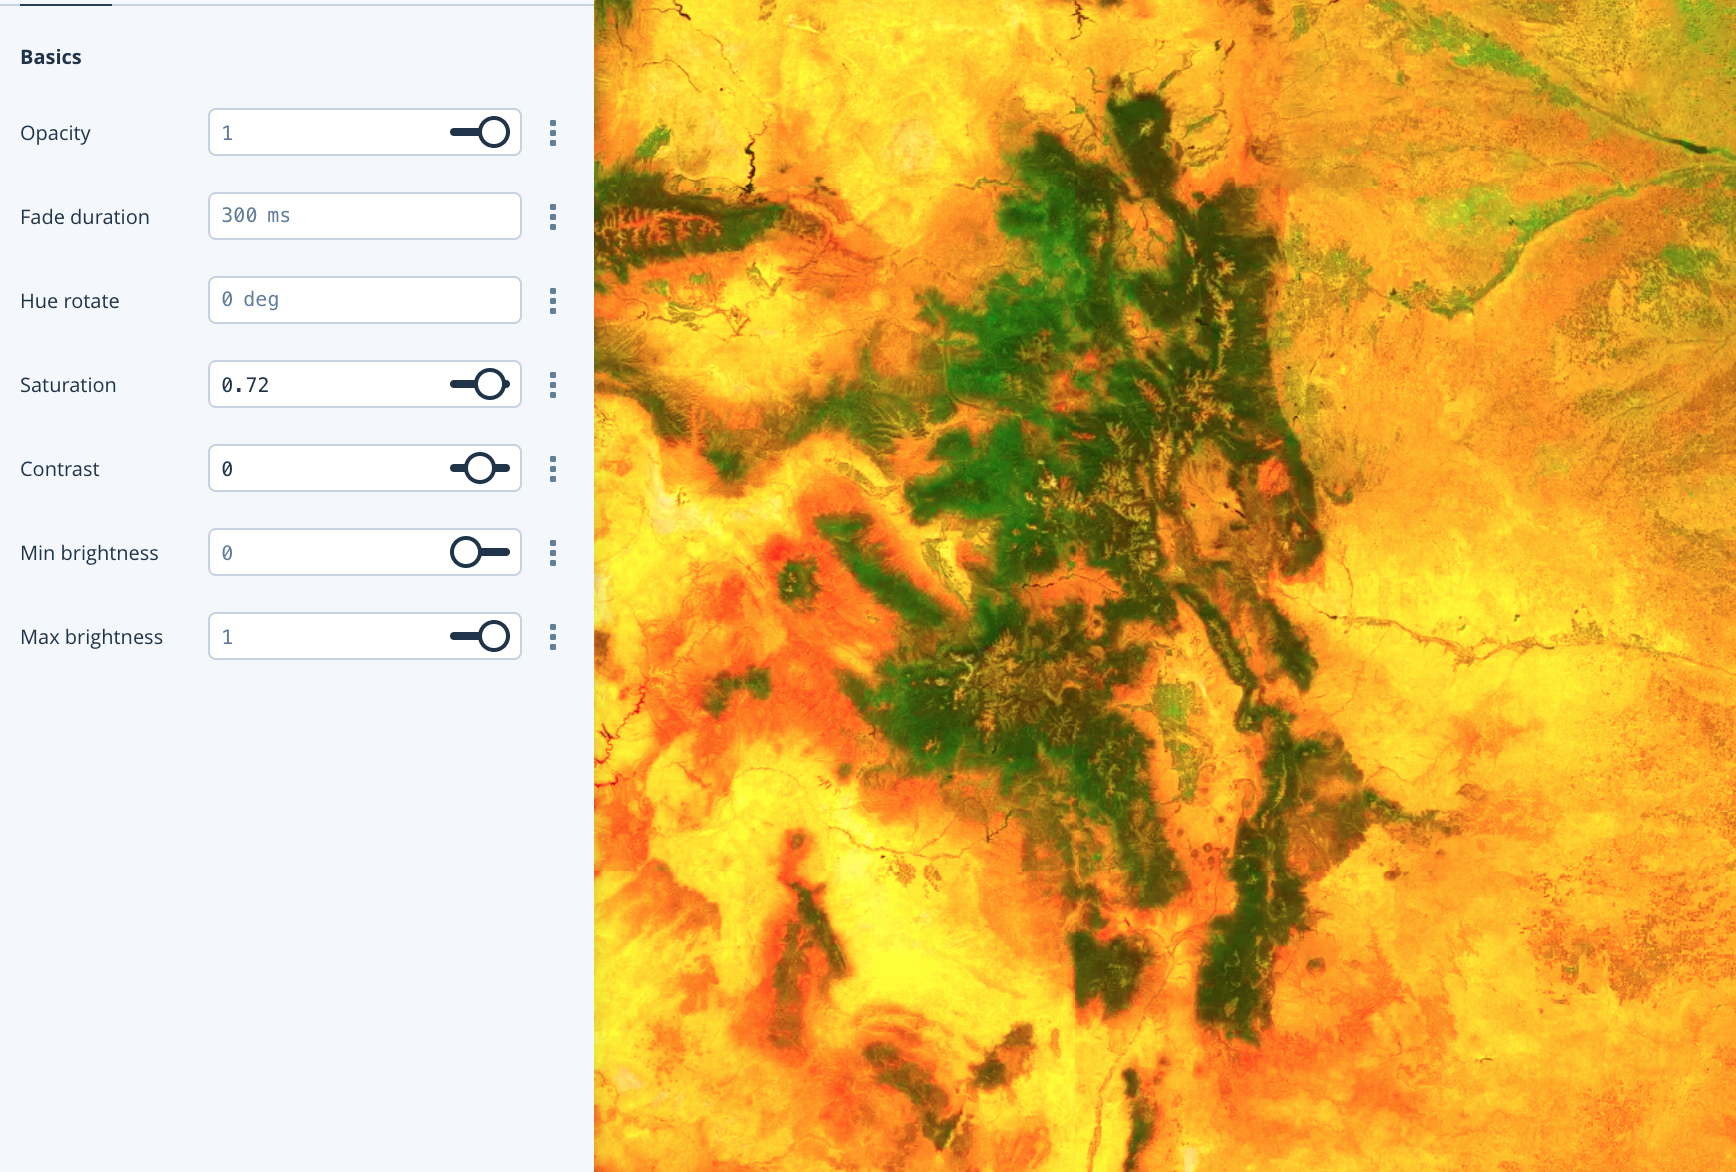 Assessing imagery at scale - Points of interest